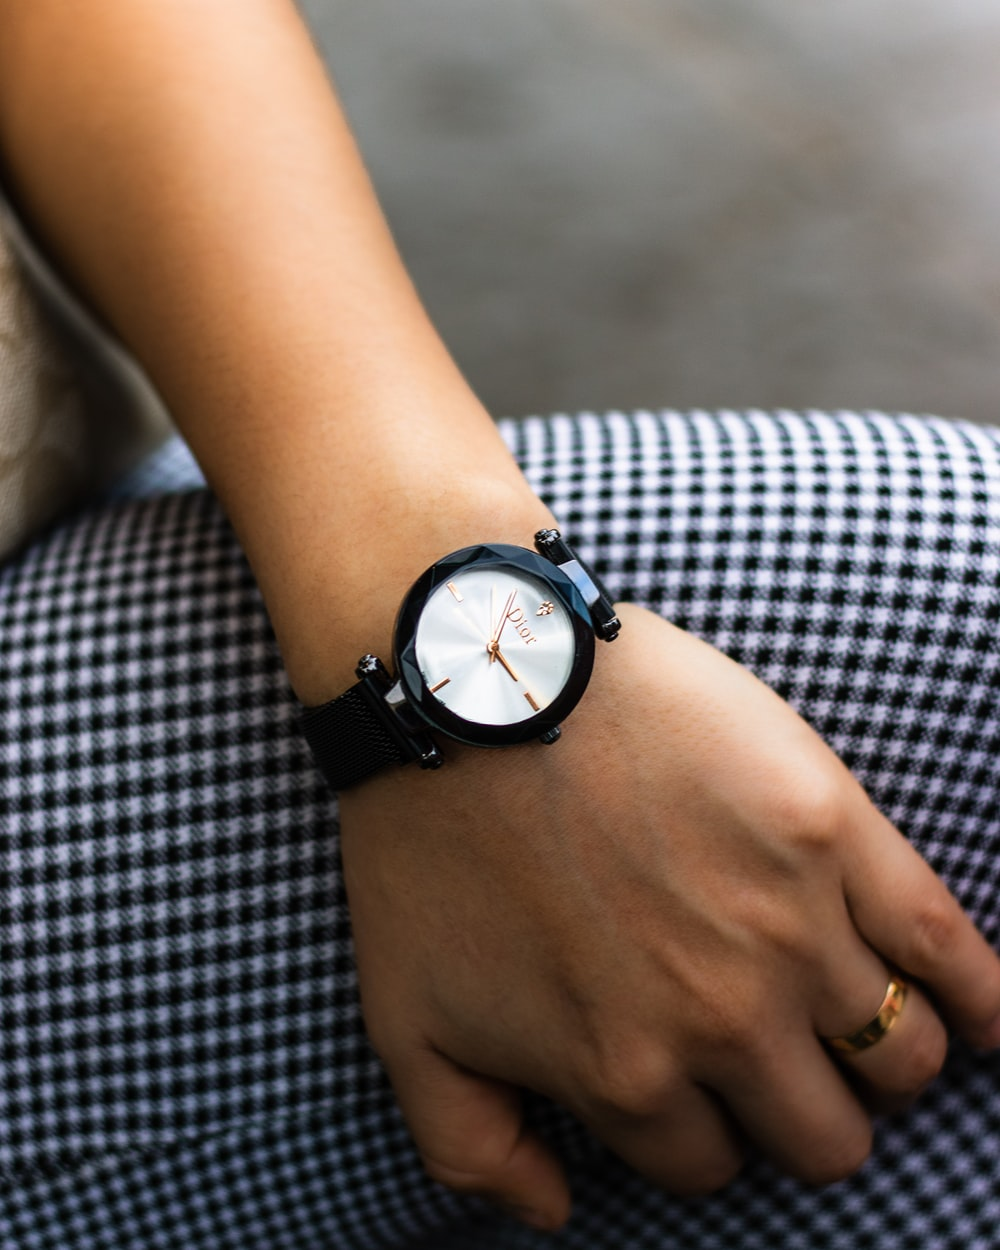 person wearing watch at 11:15